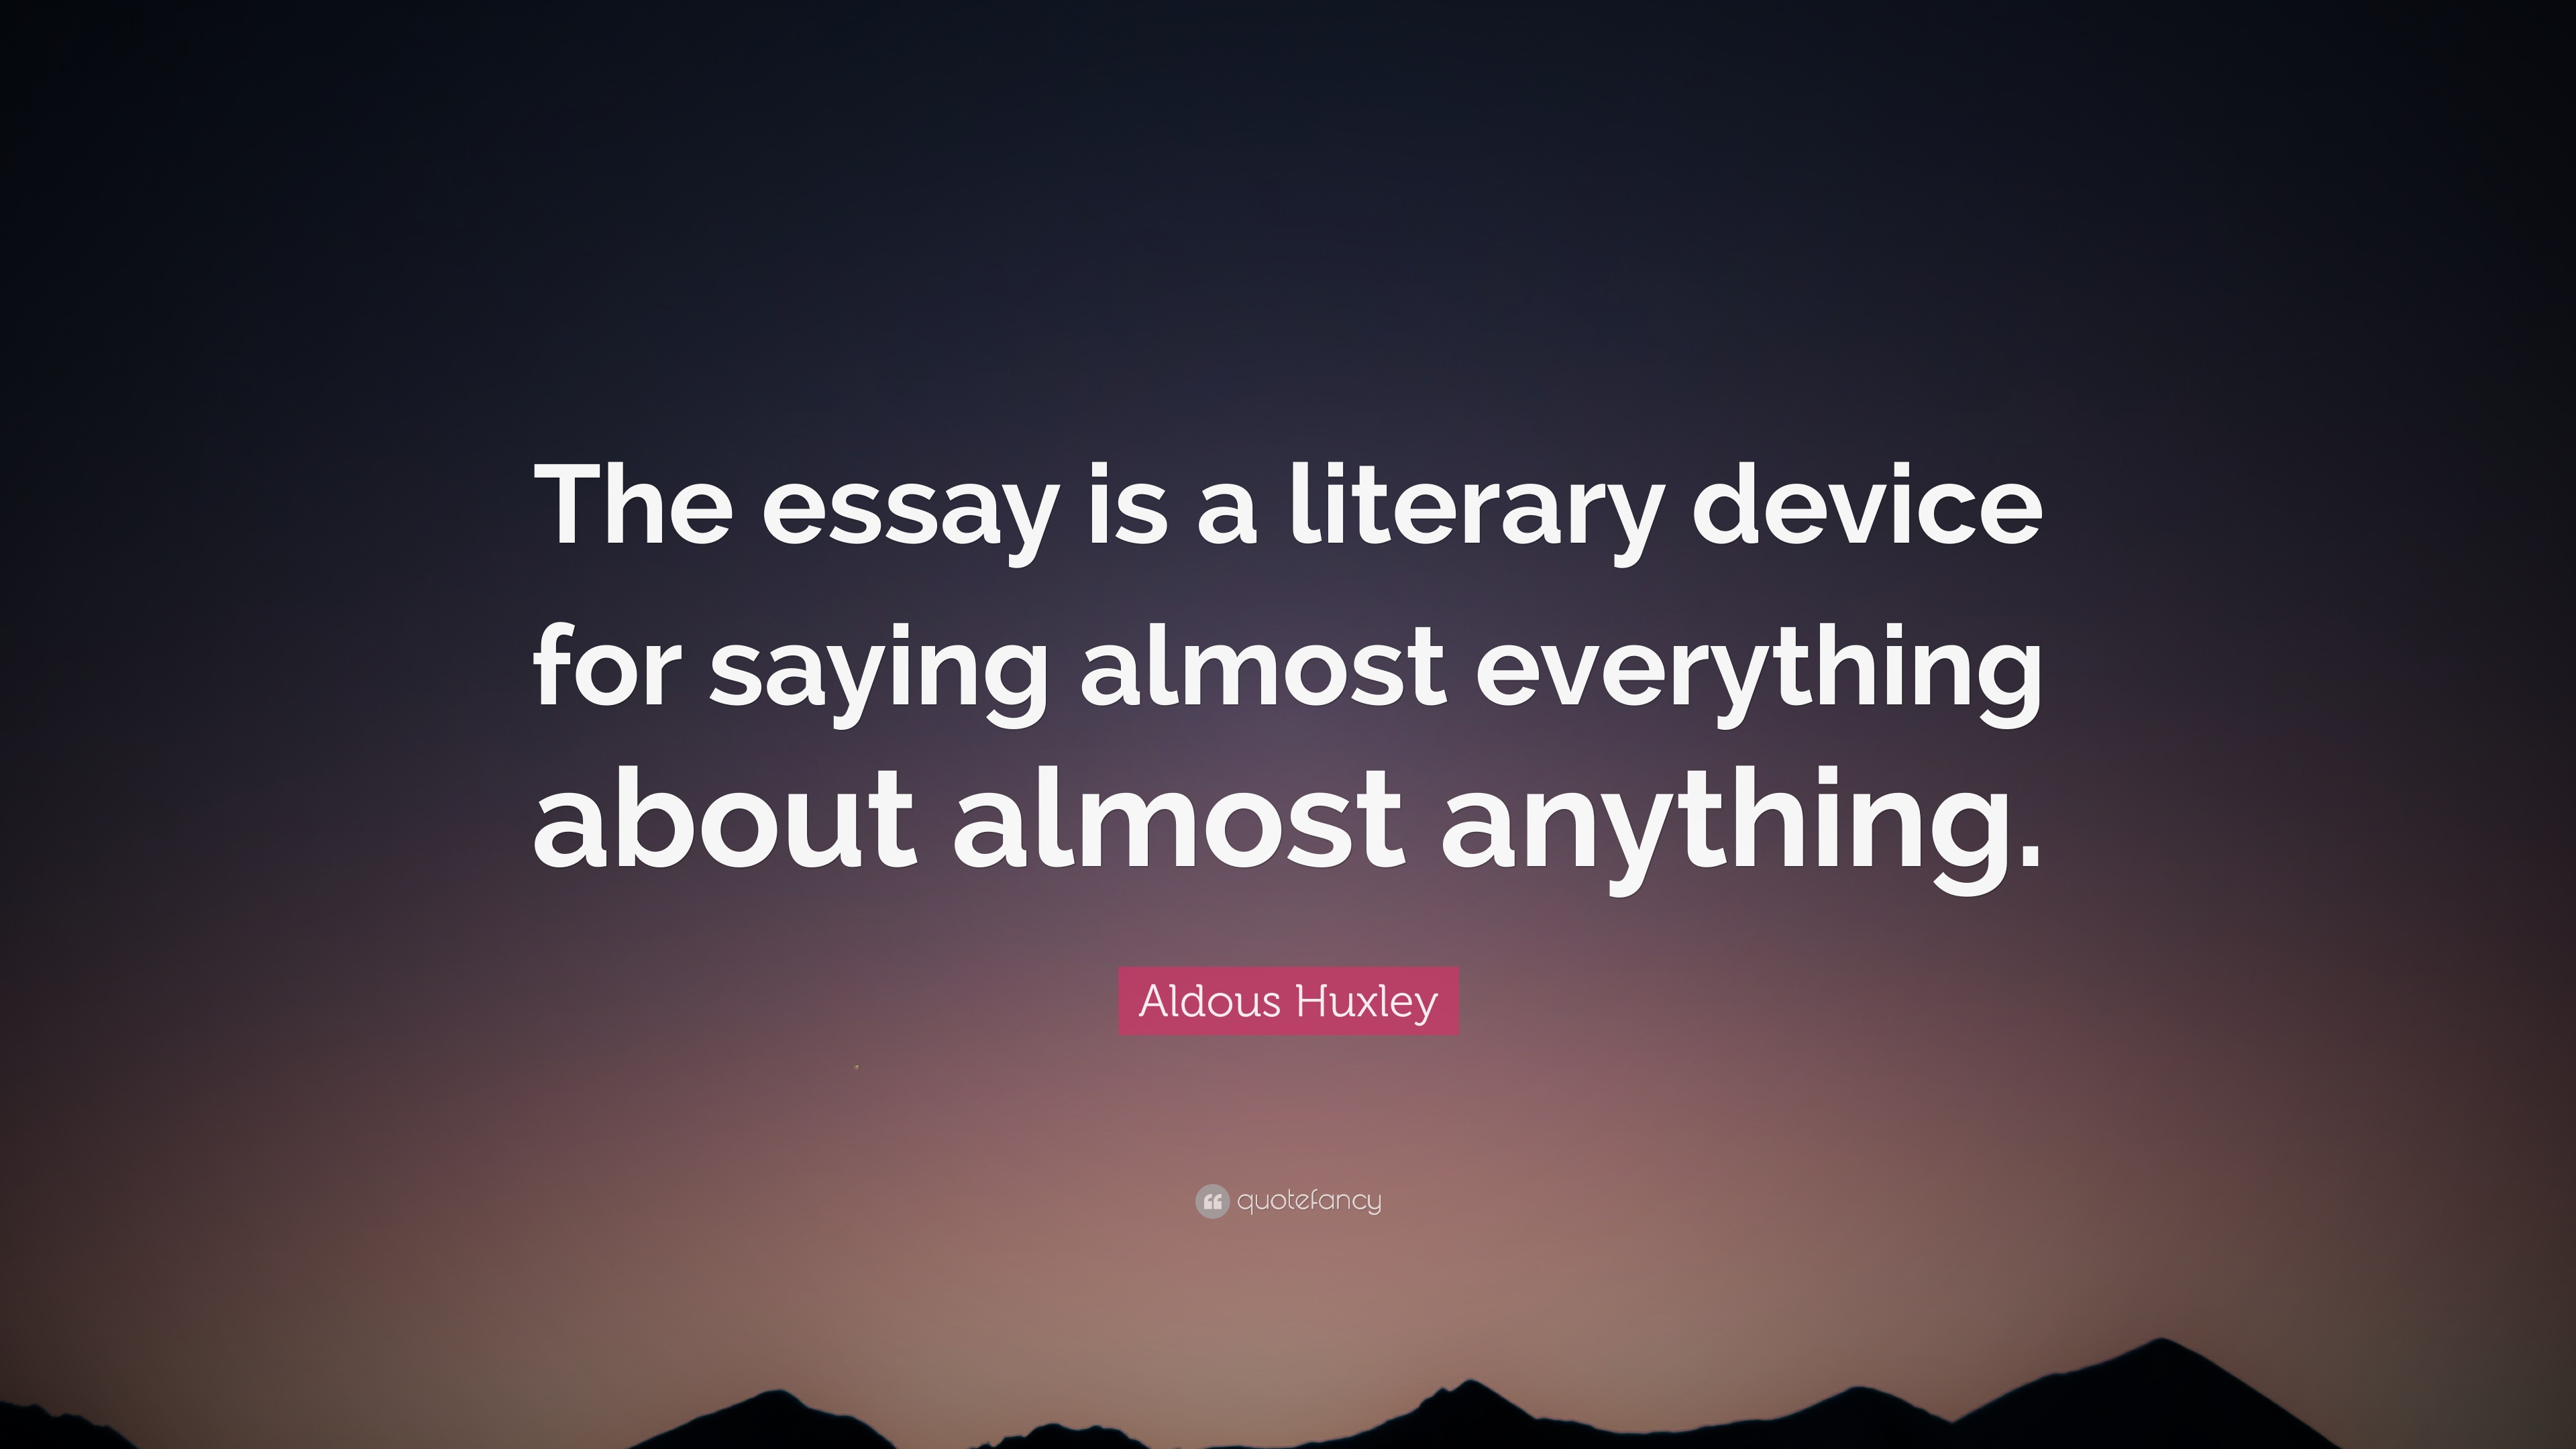 trifles by susan glaspell essay trifles by susan glaspell students  literary device essay aldous huxley quote the essay is a literary device for saying aldous huxley